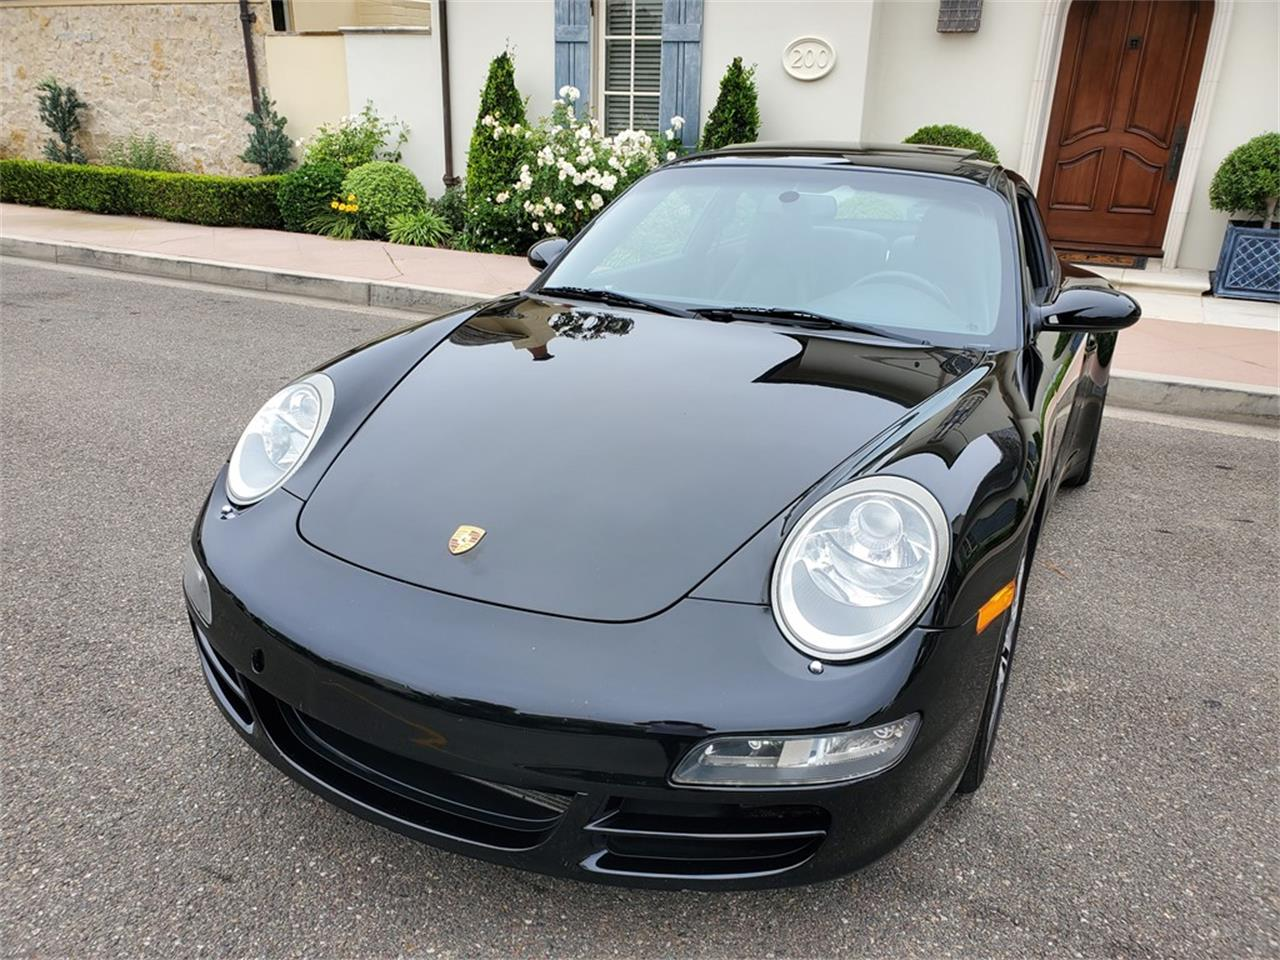 Large Picture of 2007 Porsche 911 Carrera 4S located in California - $29,990.00 Offered by Star European Inc. - QT04